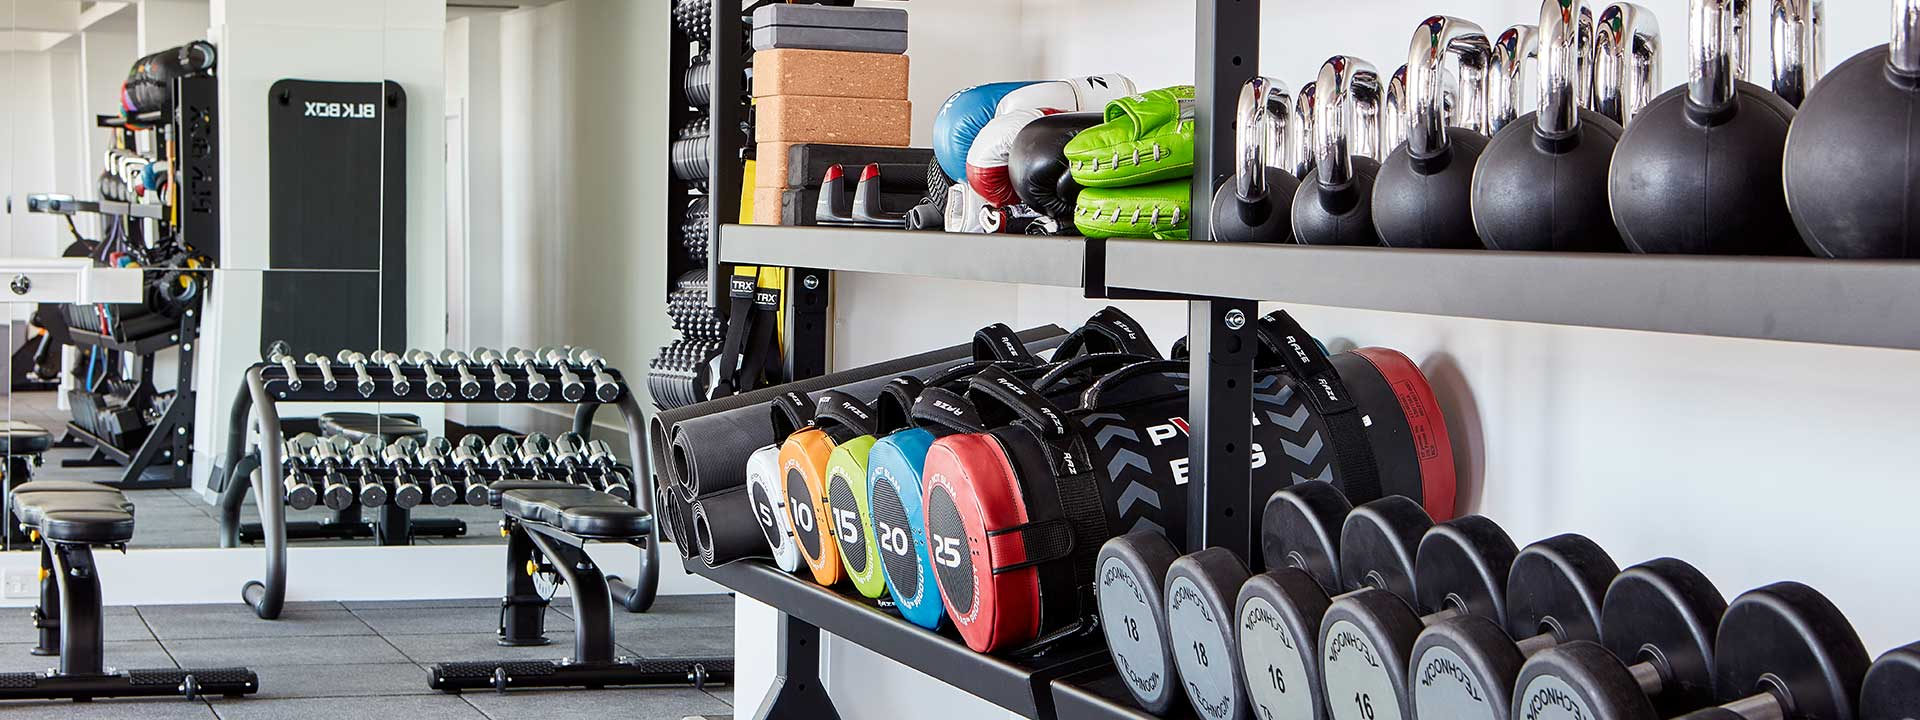 Claridge's fitness & personal training with weights